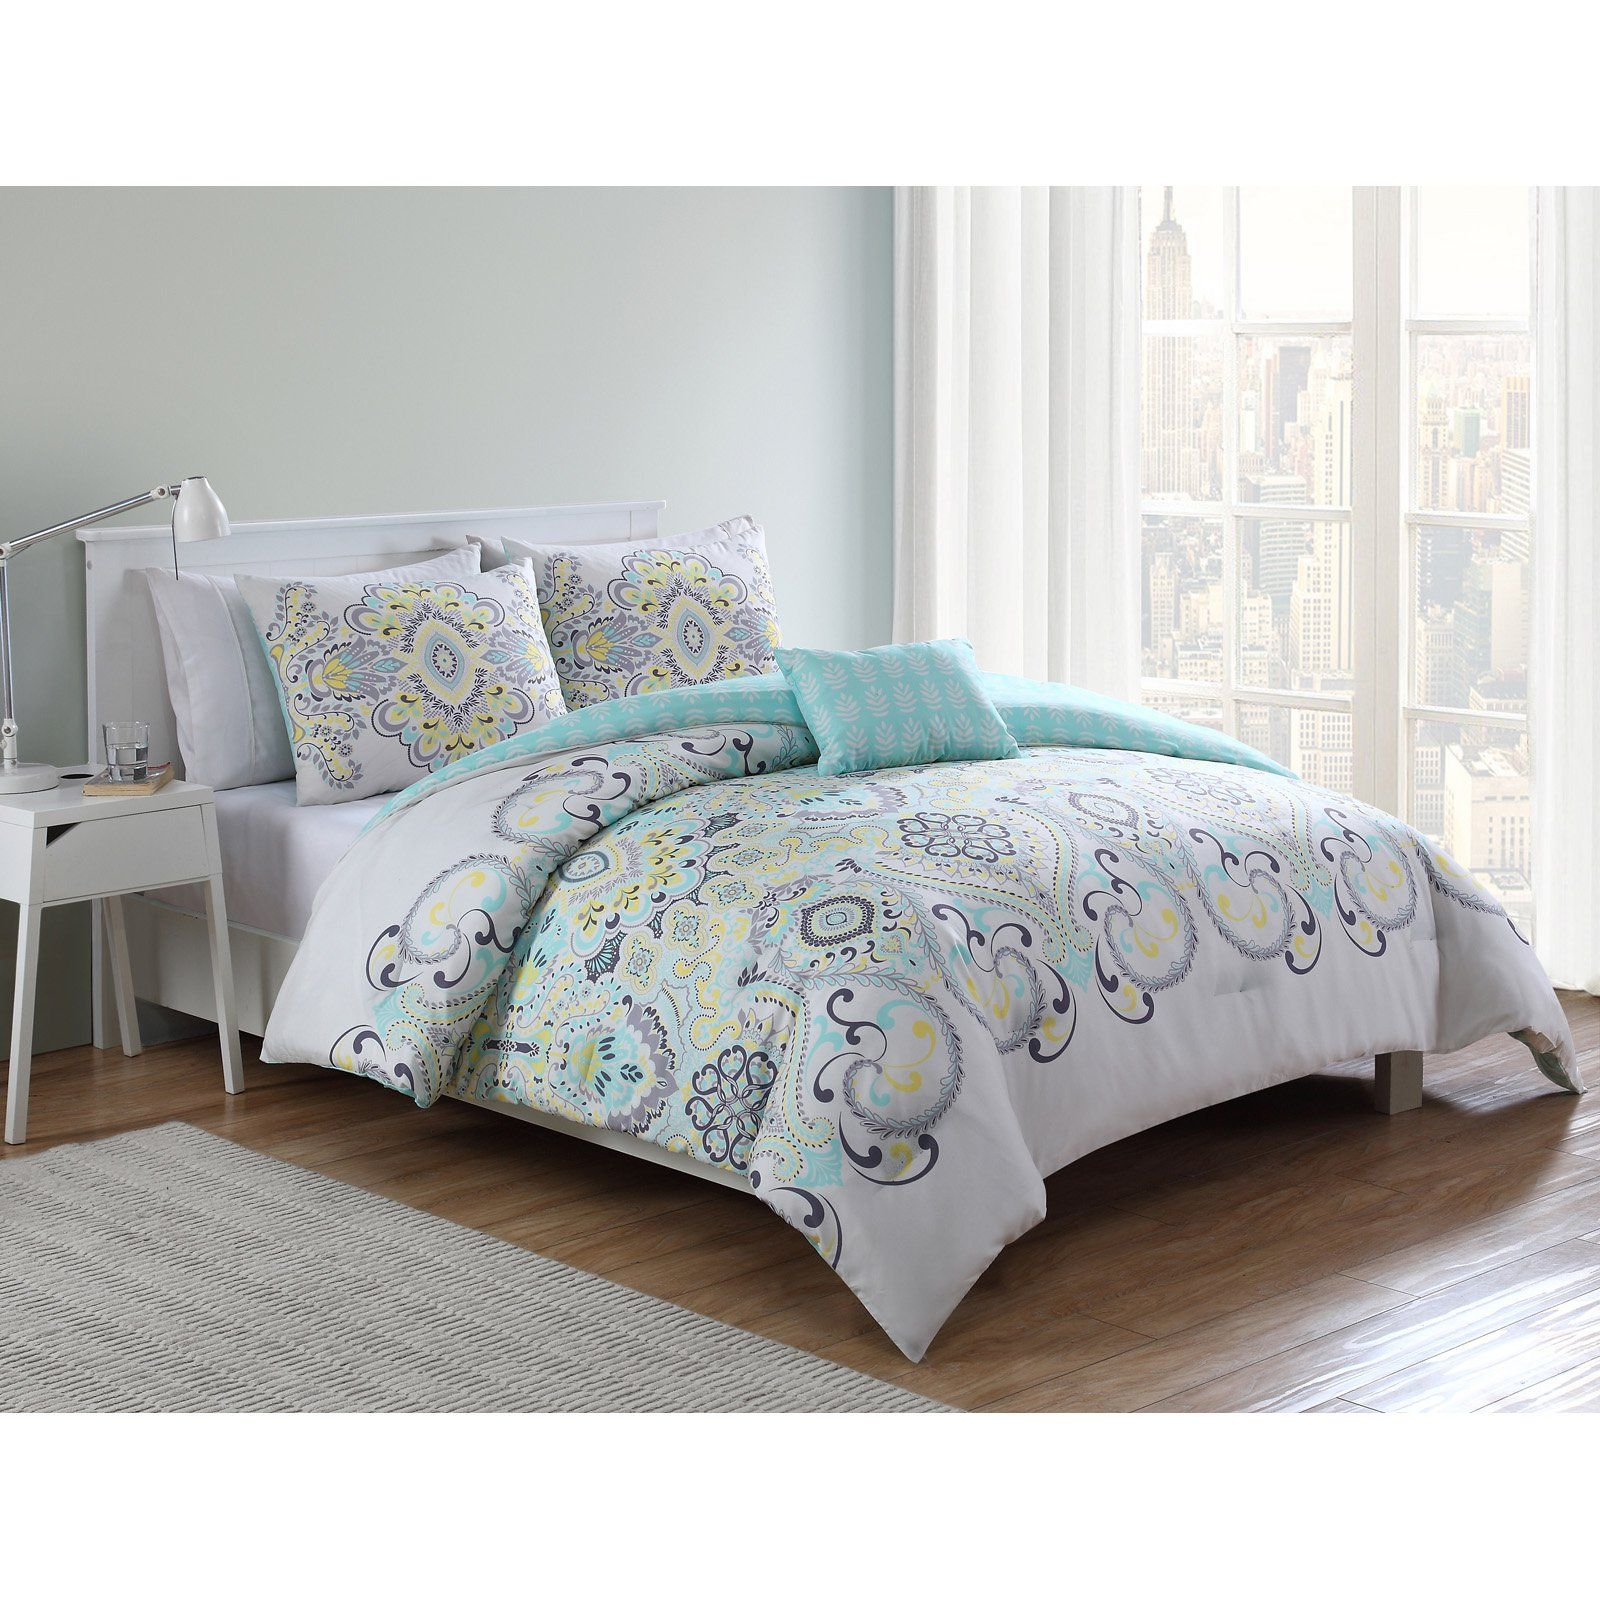 Amherst Printed Comforter Set By Vcny Home Bedding Sets